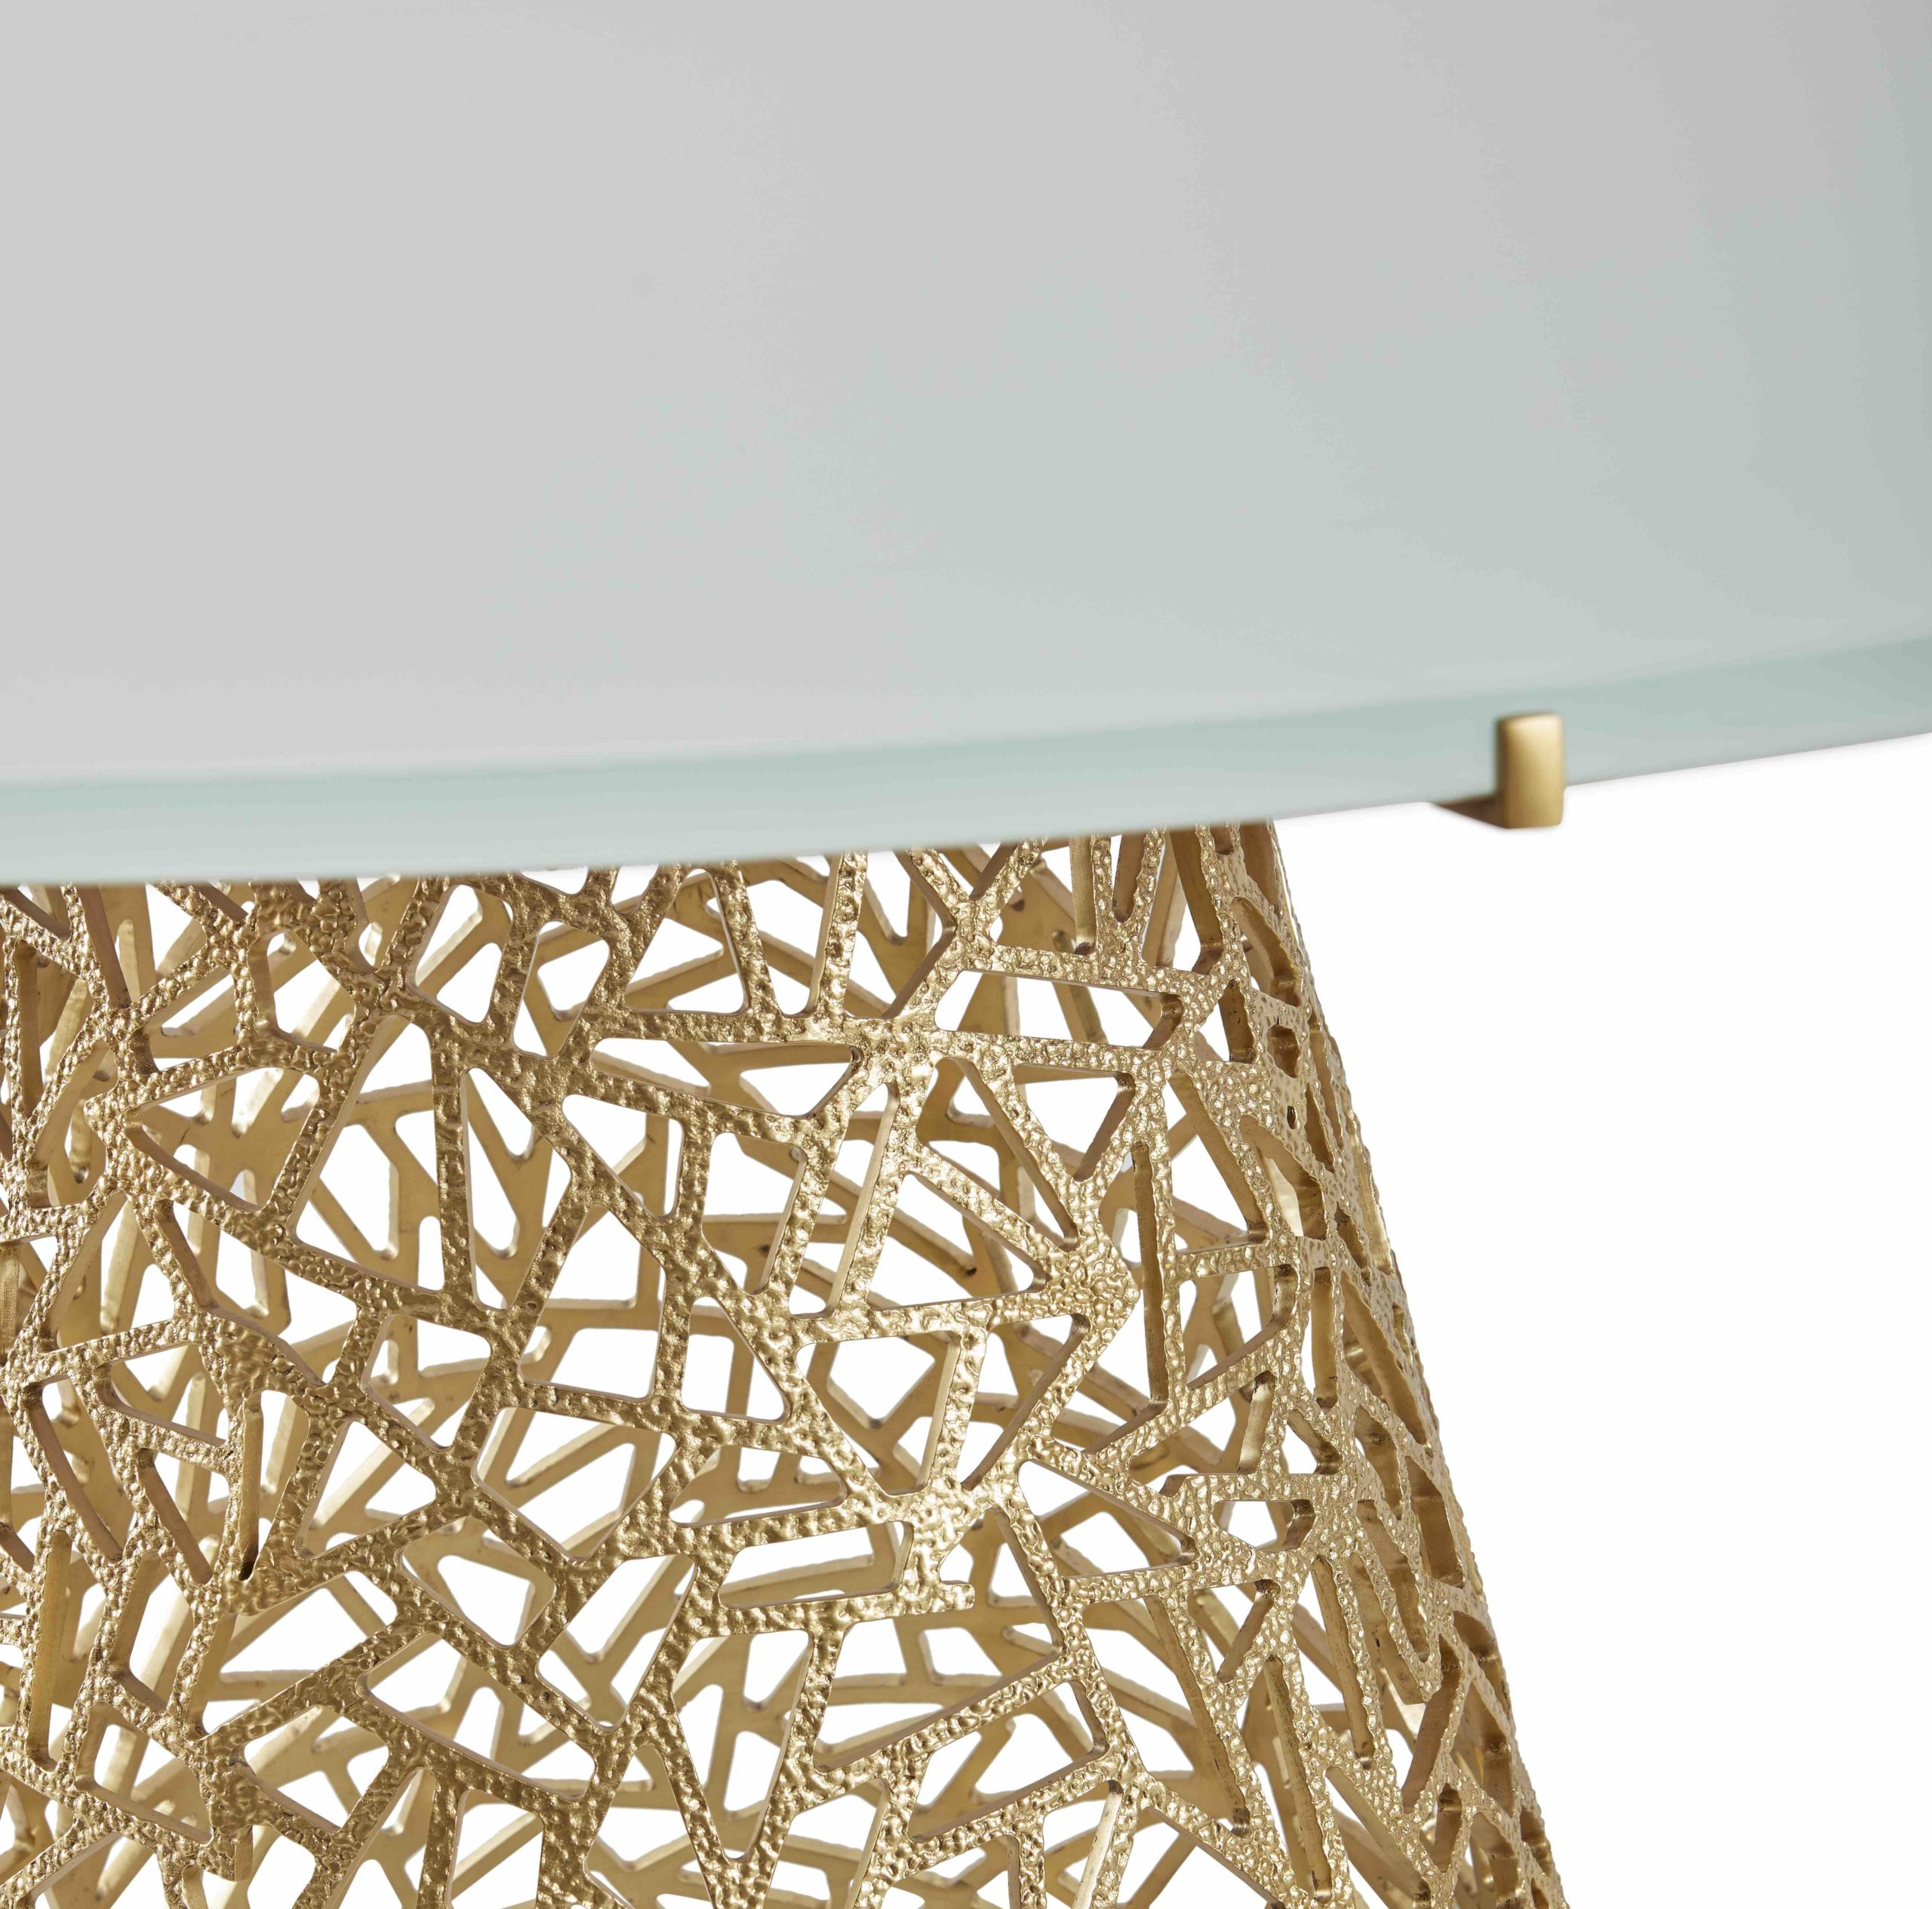 Baker_products_WNWN_filigree_table_BAA3236_DETAIL-scaled-2